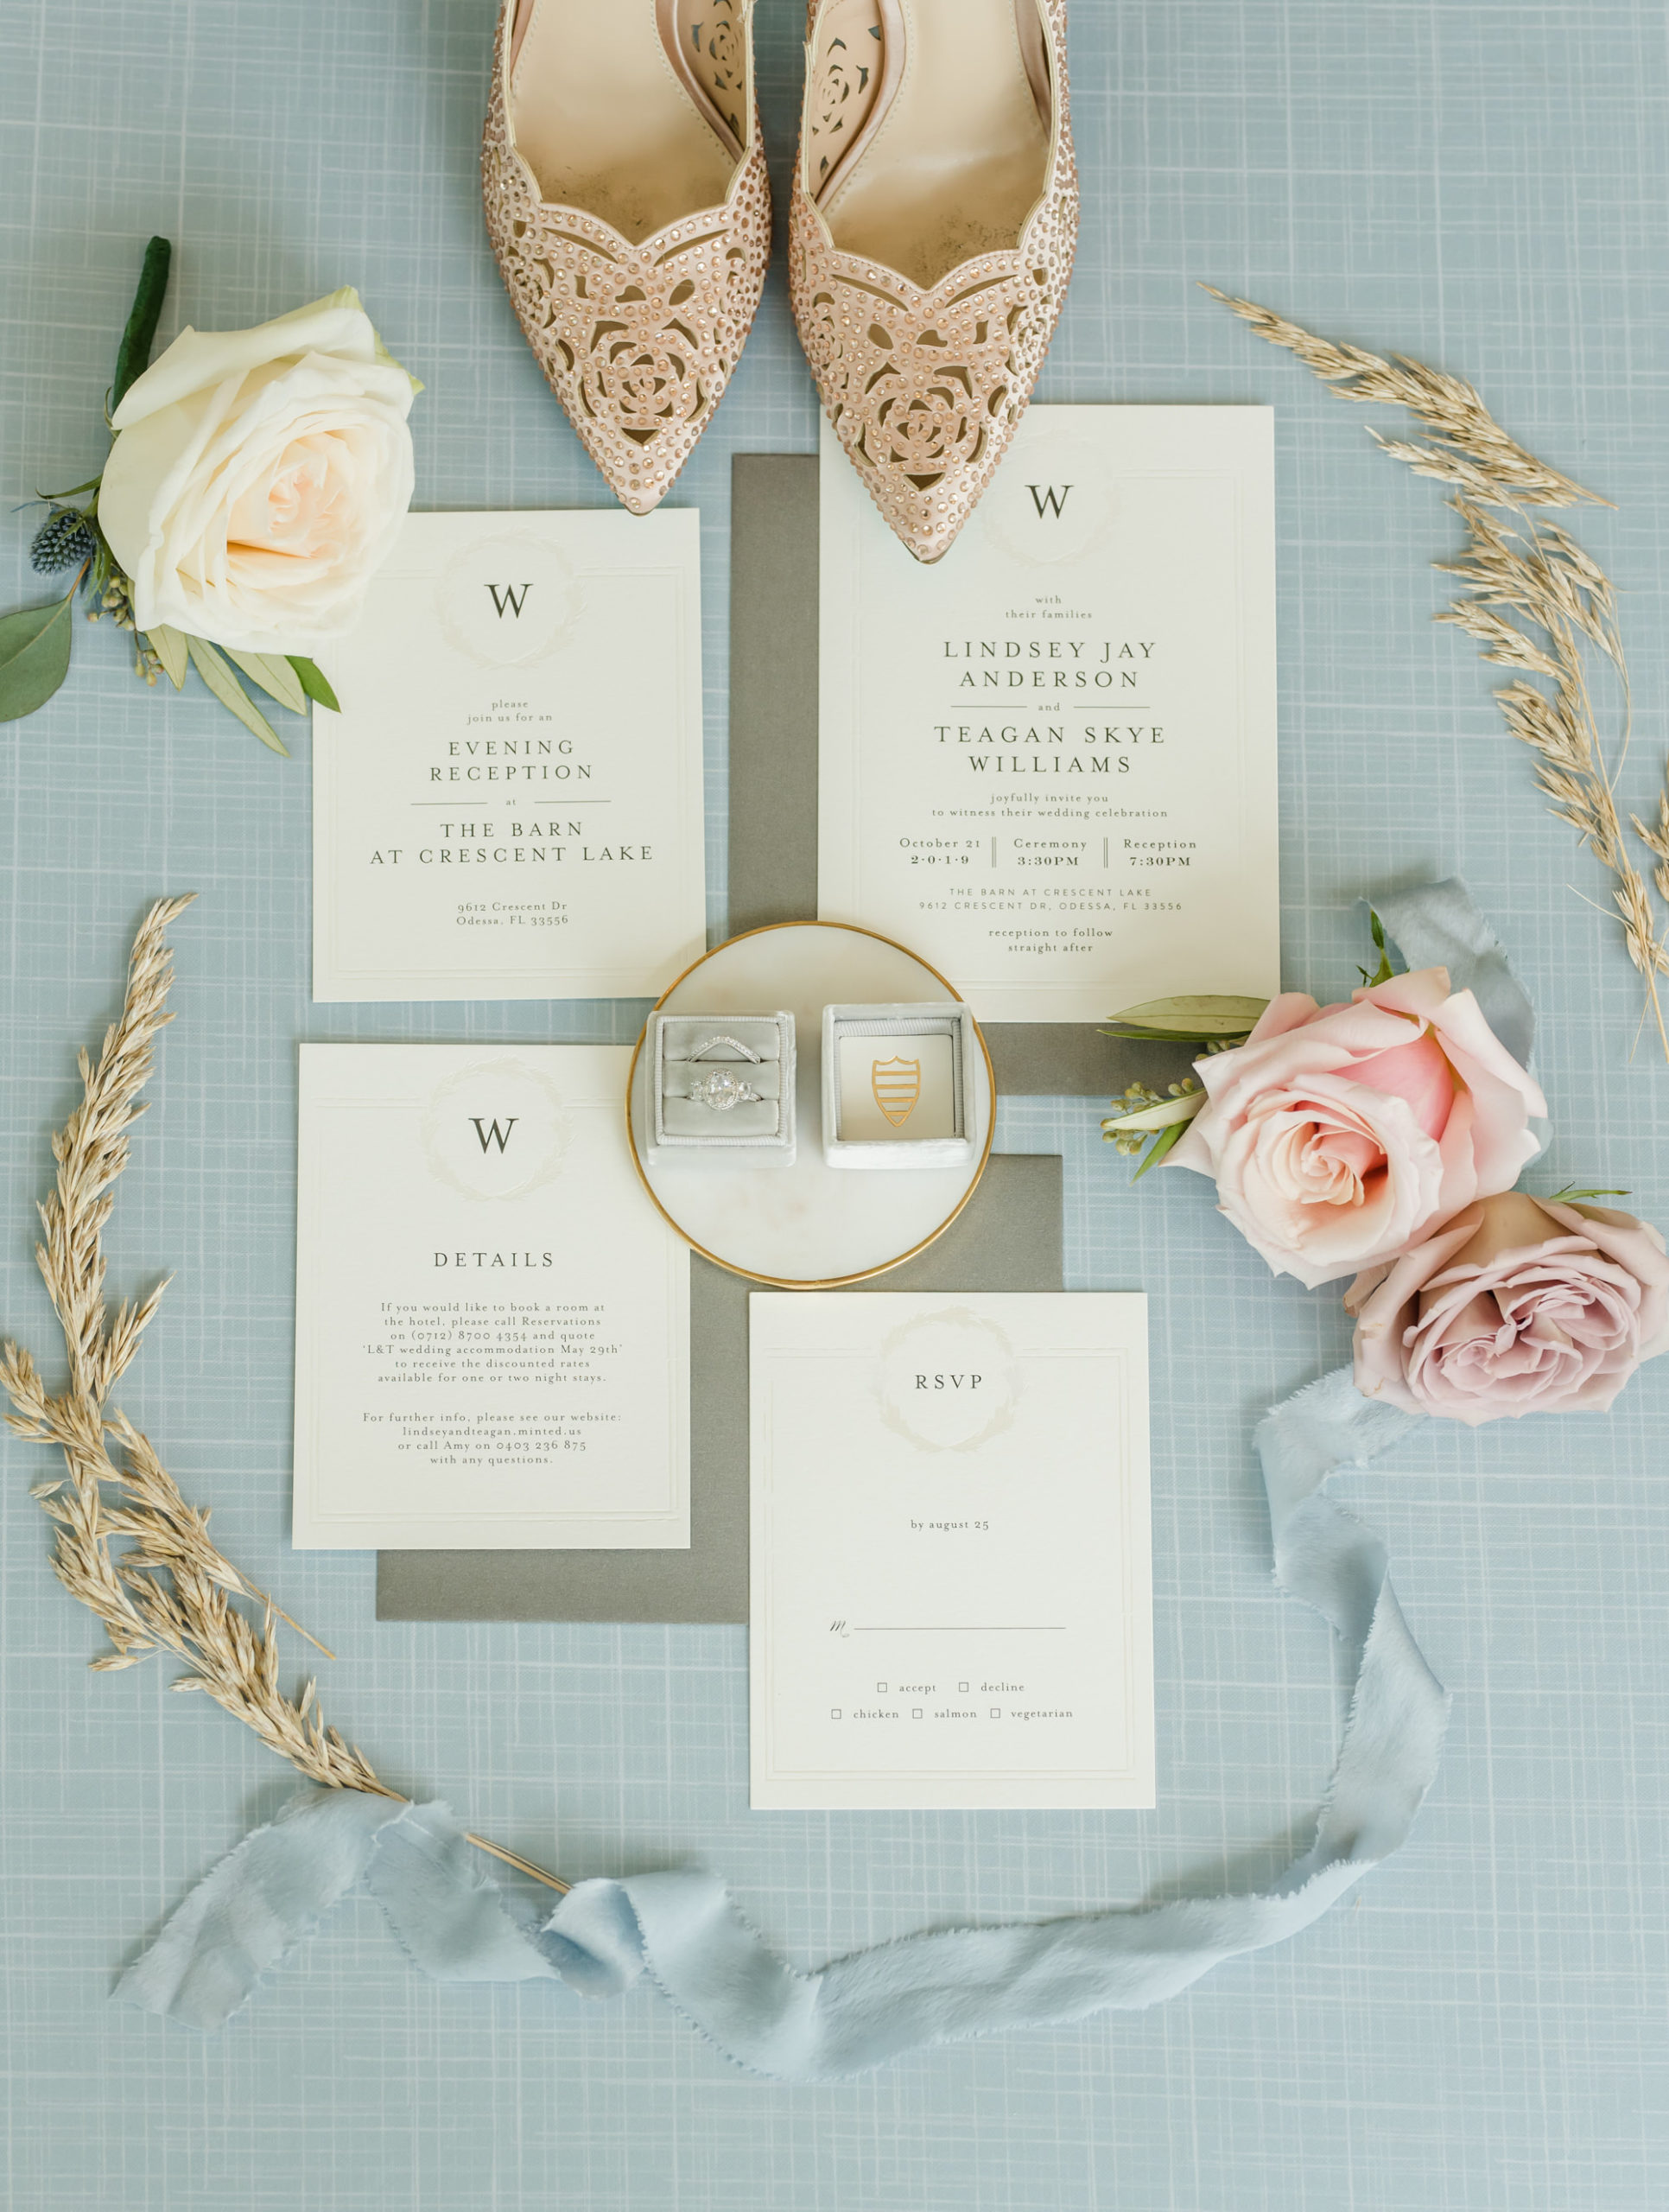 Elegant Bridal Details Shot, Wedding Invitation Suite with Monogram, Dusty Blue The Mrs. Ring Box with Diamond Engagement Ring and Wedding Band, Dusty Rise Gold Shoes   Tampa Bay Wedding Planner Elegant Affairs by Design